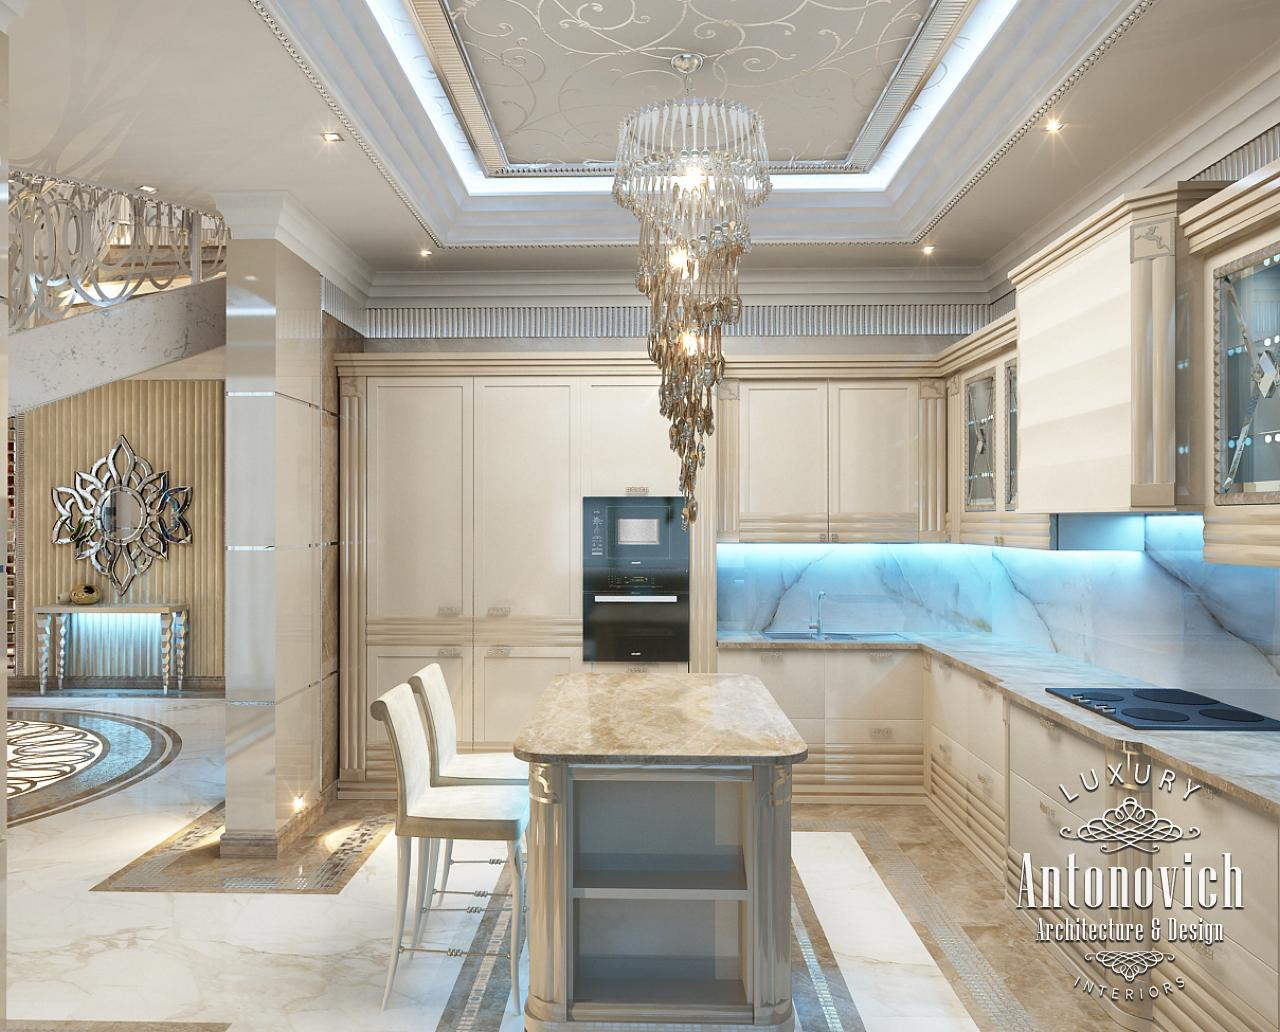 Luxury antonovich design uae luxury interior design dubai for Indoor design